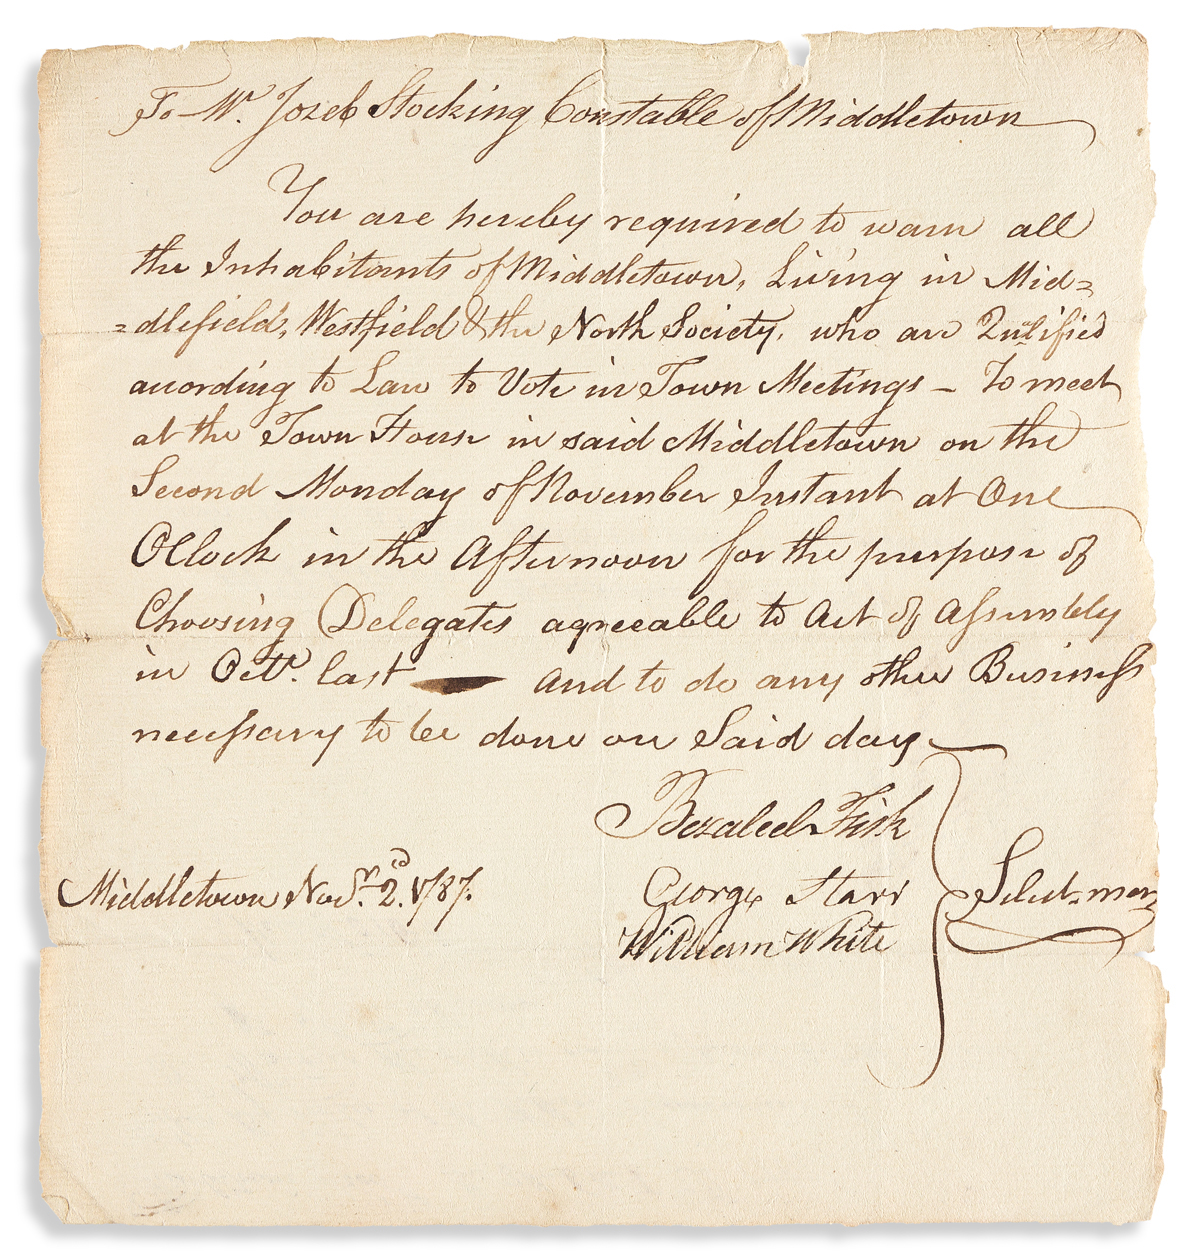 (CONSTITUTION.) Order for voting on delegates to Connecticuts convention for ratifying the Constitution.